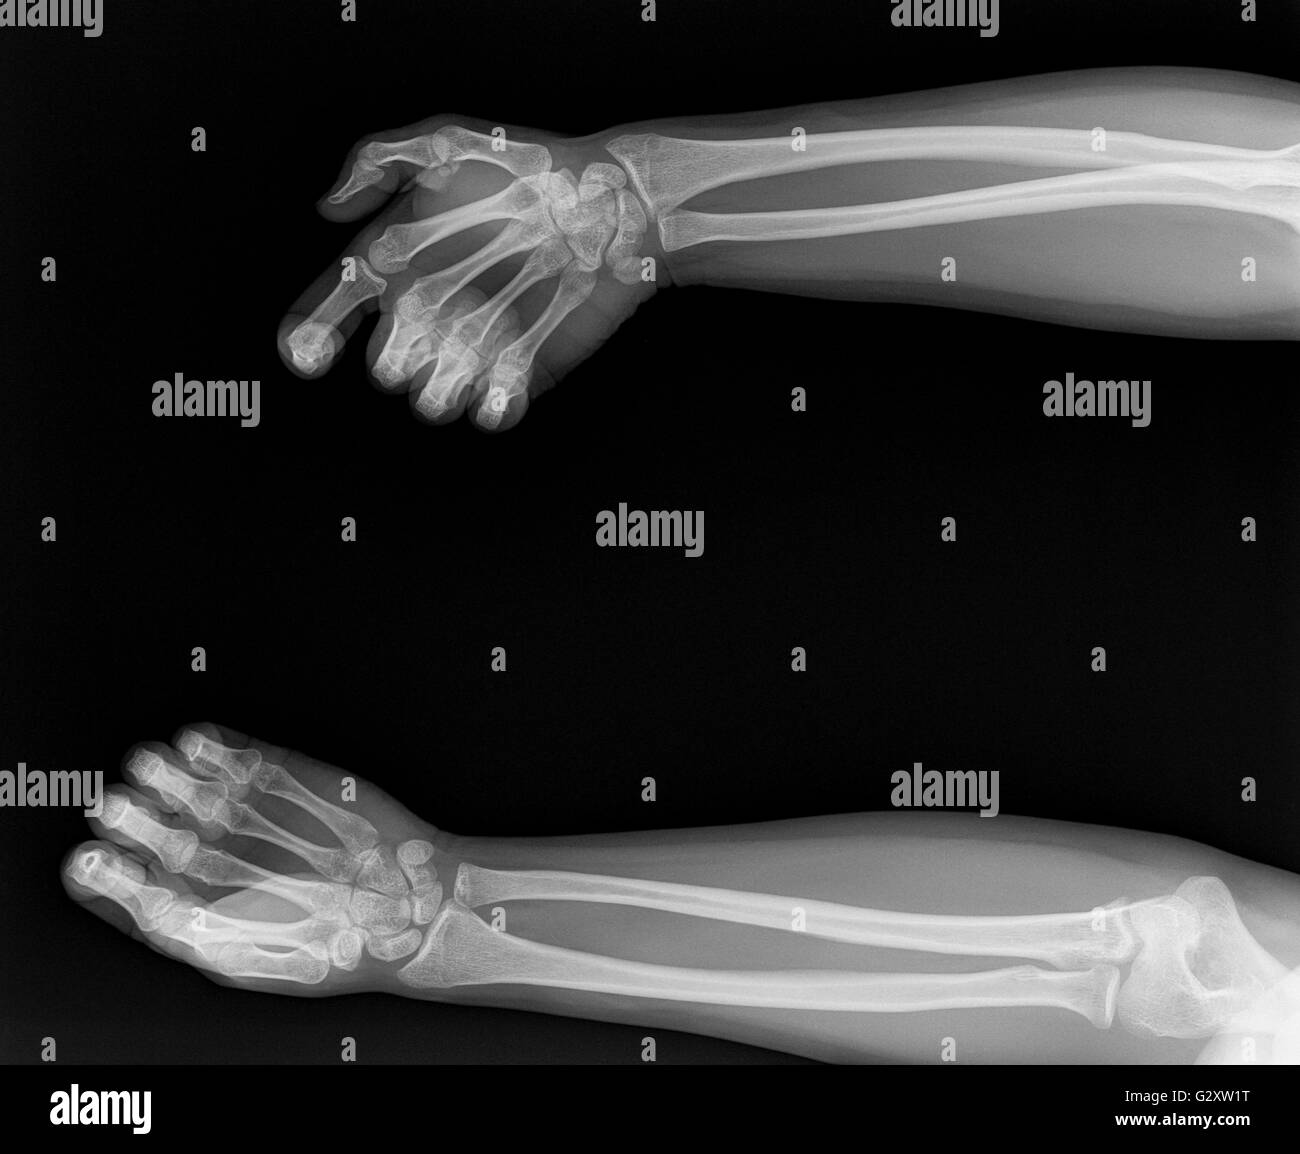 X-ray of hands - Stock Image